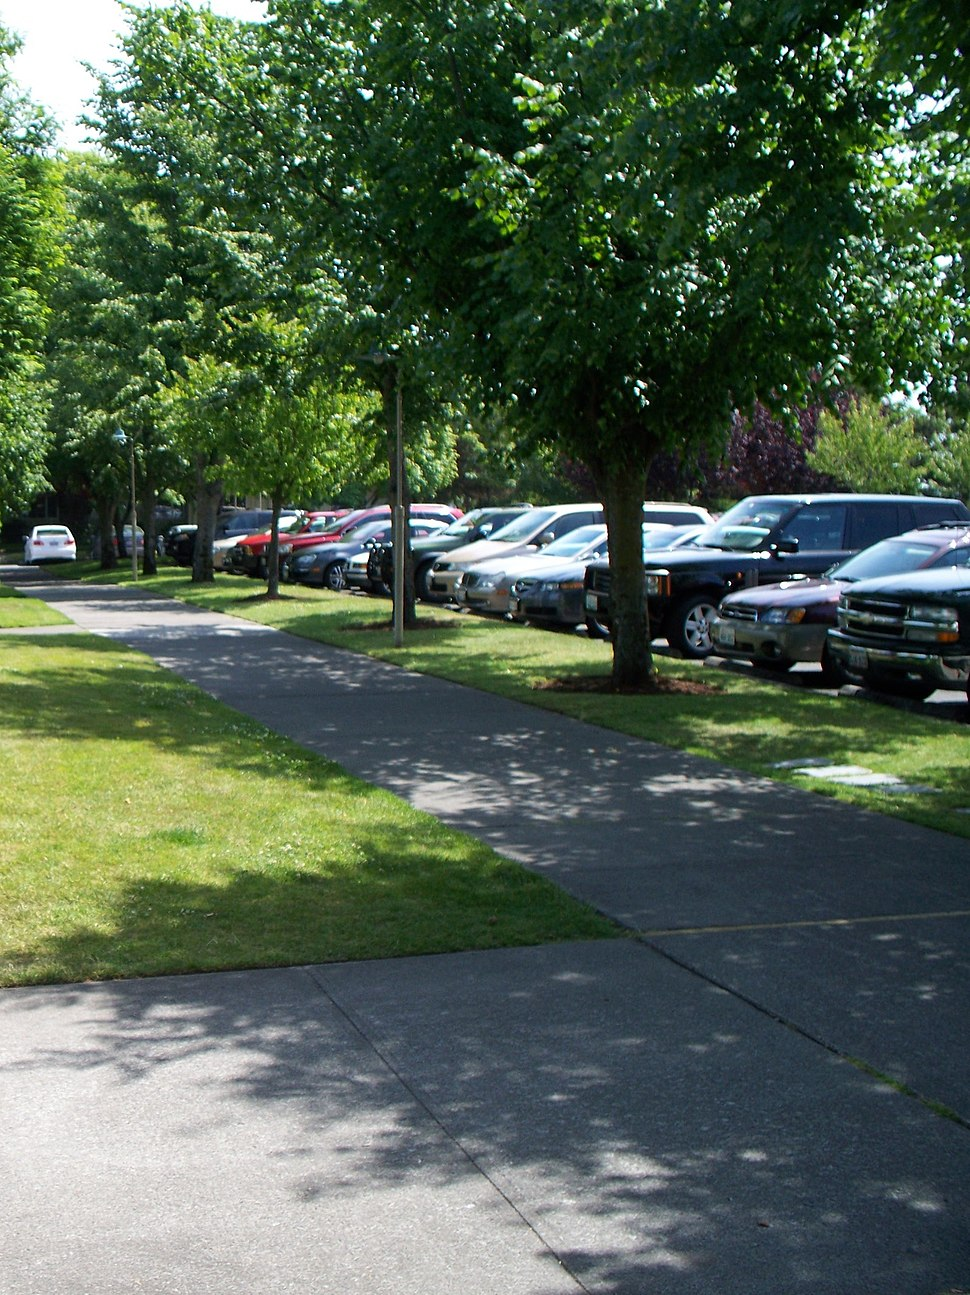 Parking lot landscaped with trees